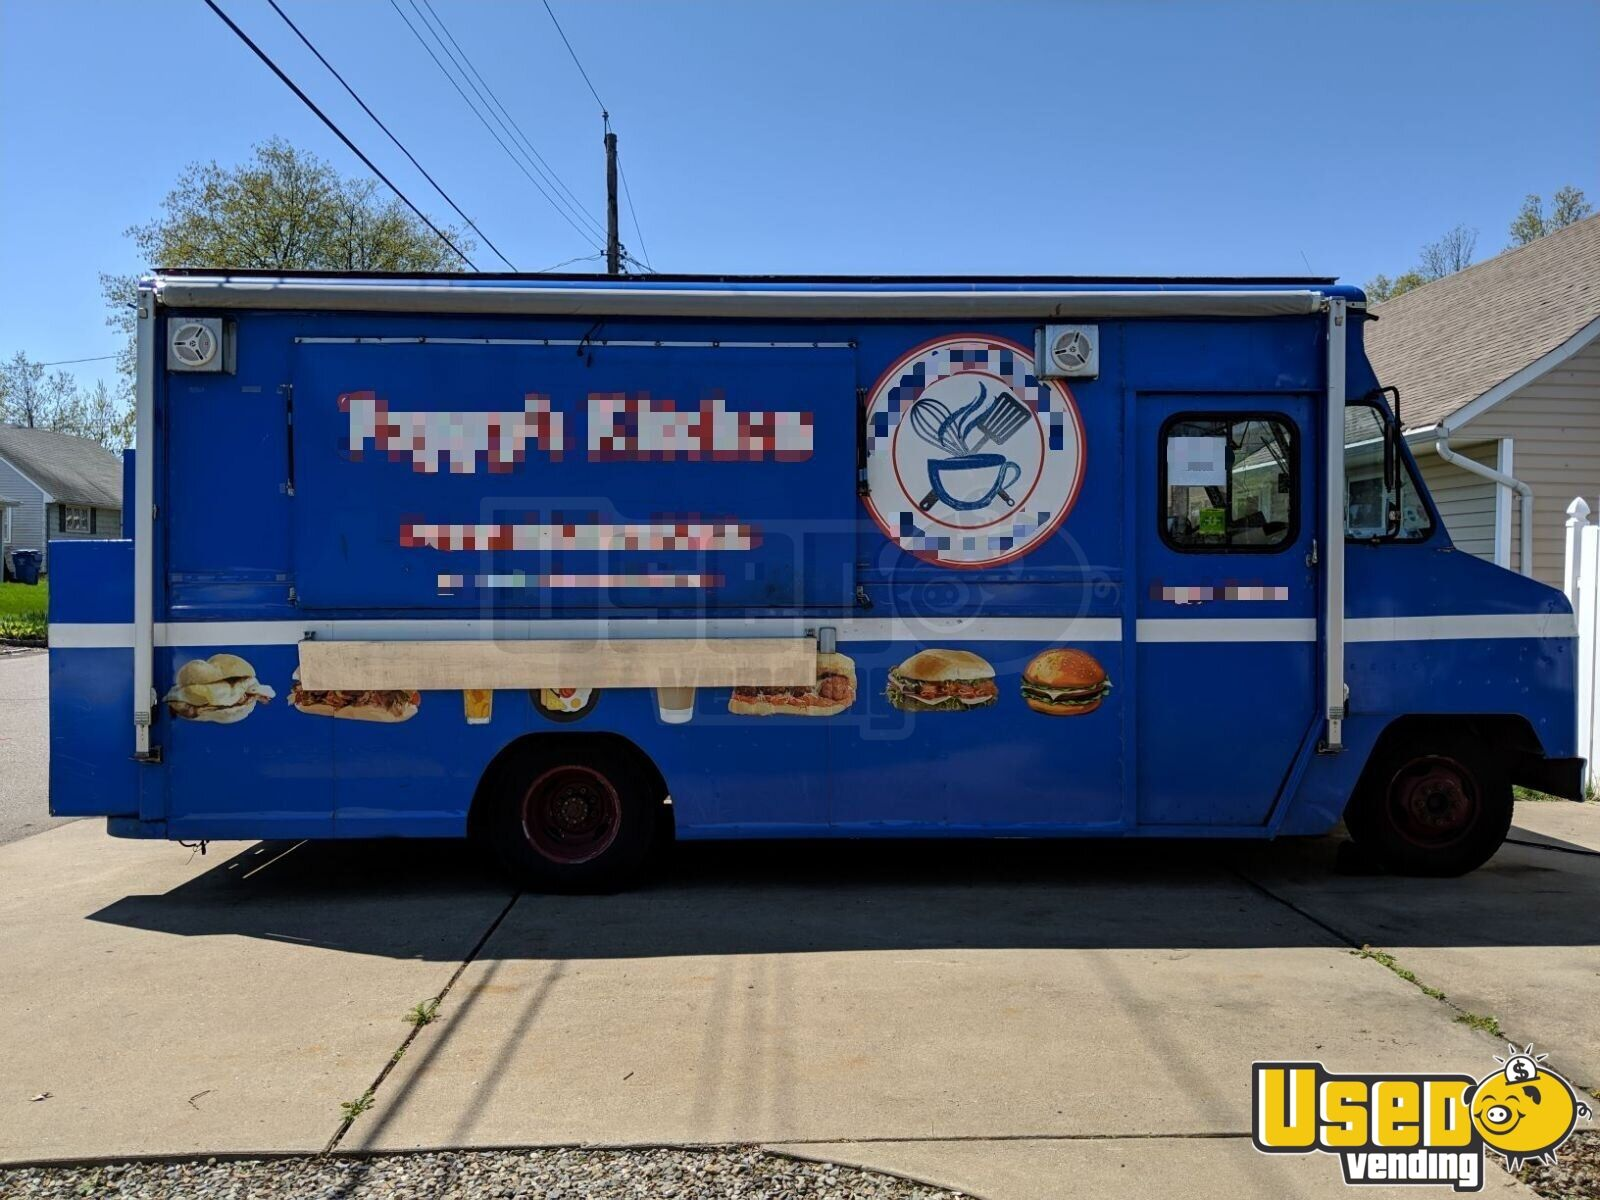 1989 Ford E-350 All-purpose Food Truck Concession Window New Jersey Gas Engine for Sale - 2